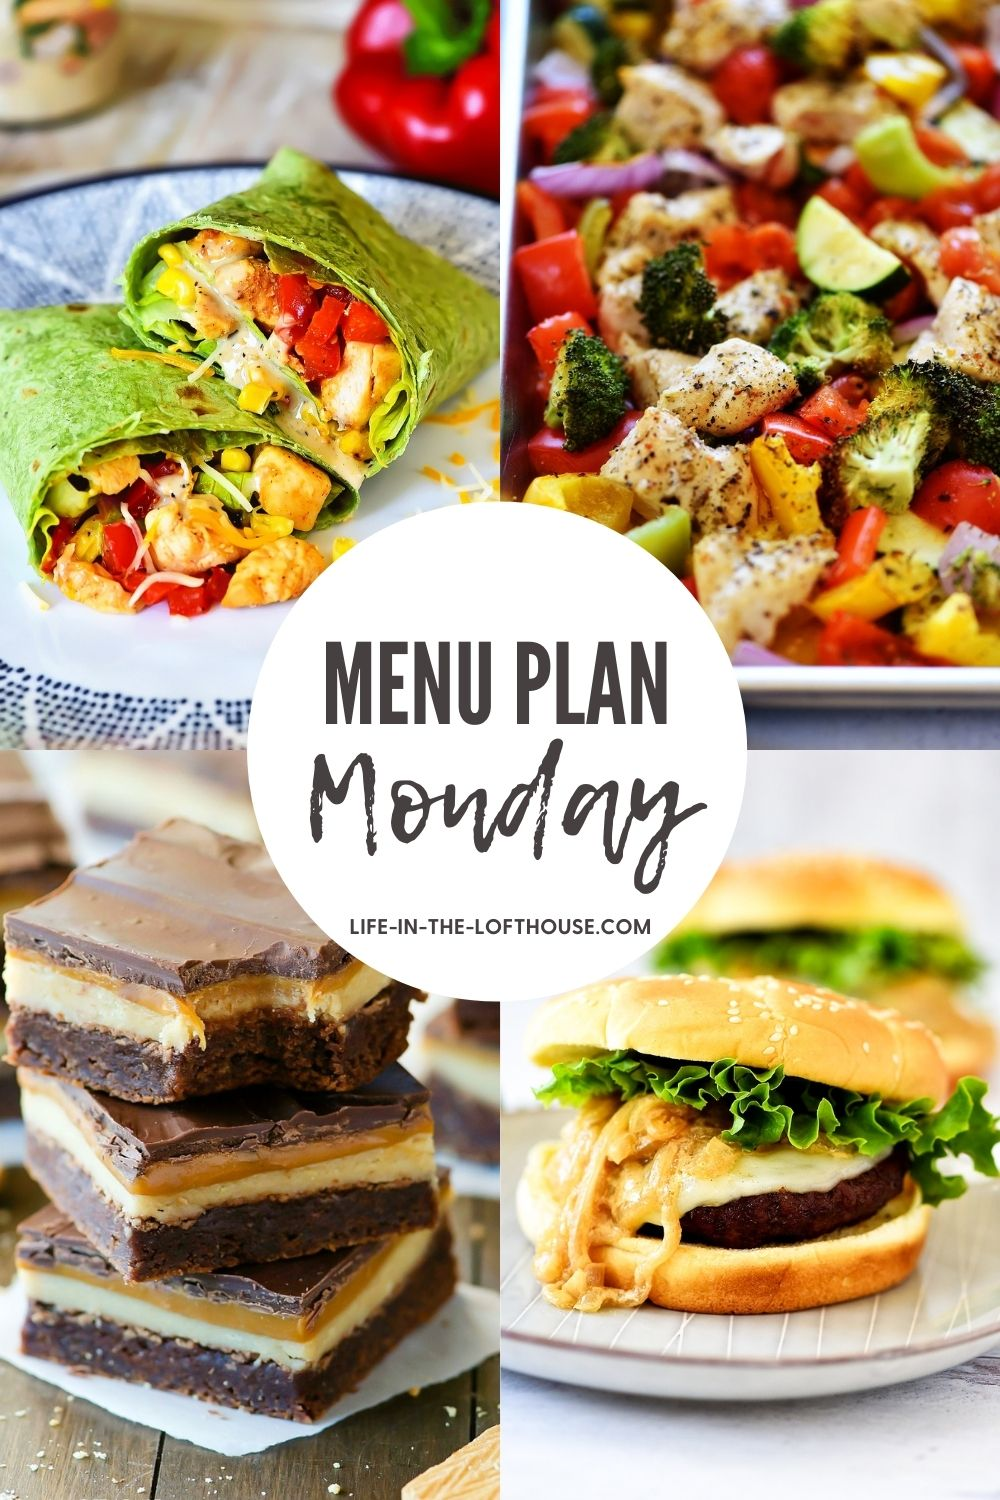 Menu Plan Monday is a dinner menu filled with delicious recipes. Each menu includes six dinners and one dessert idea!